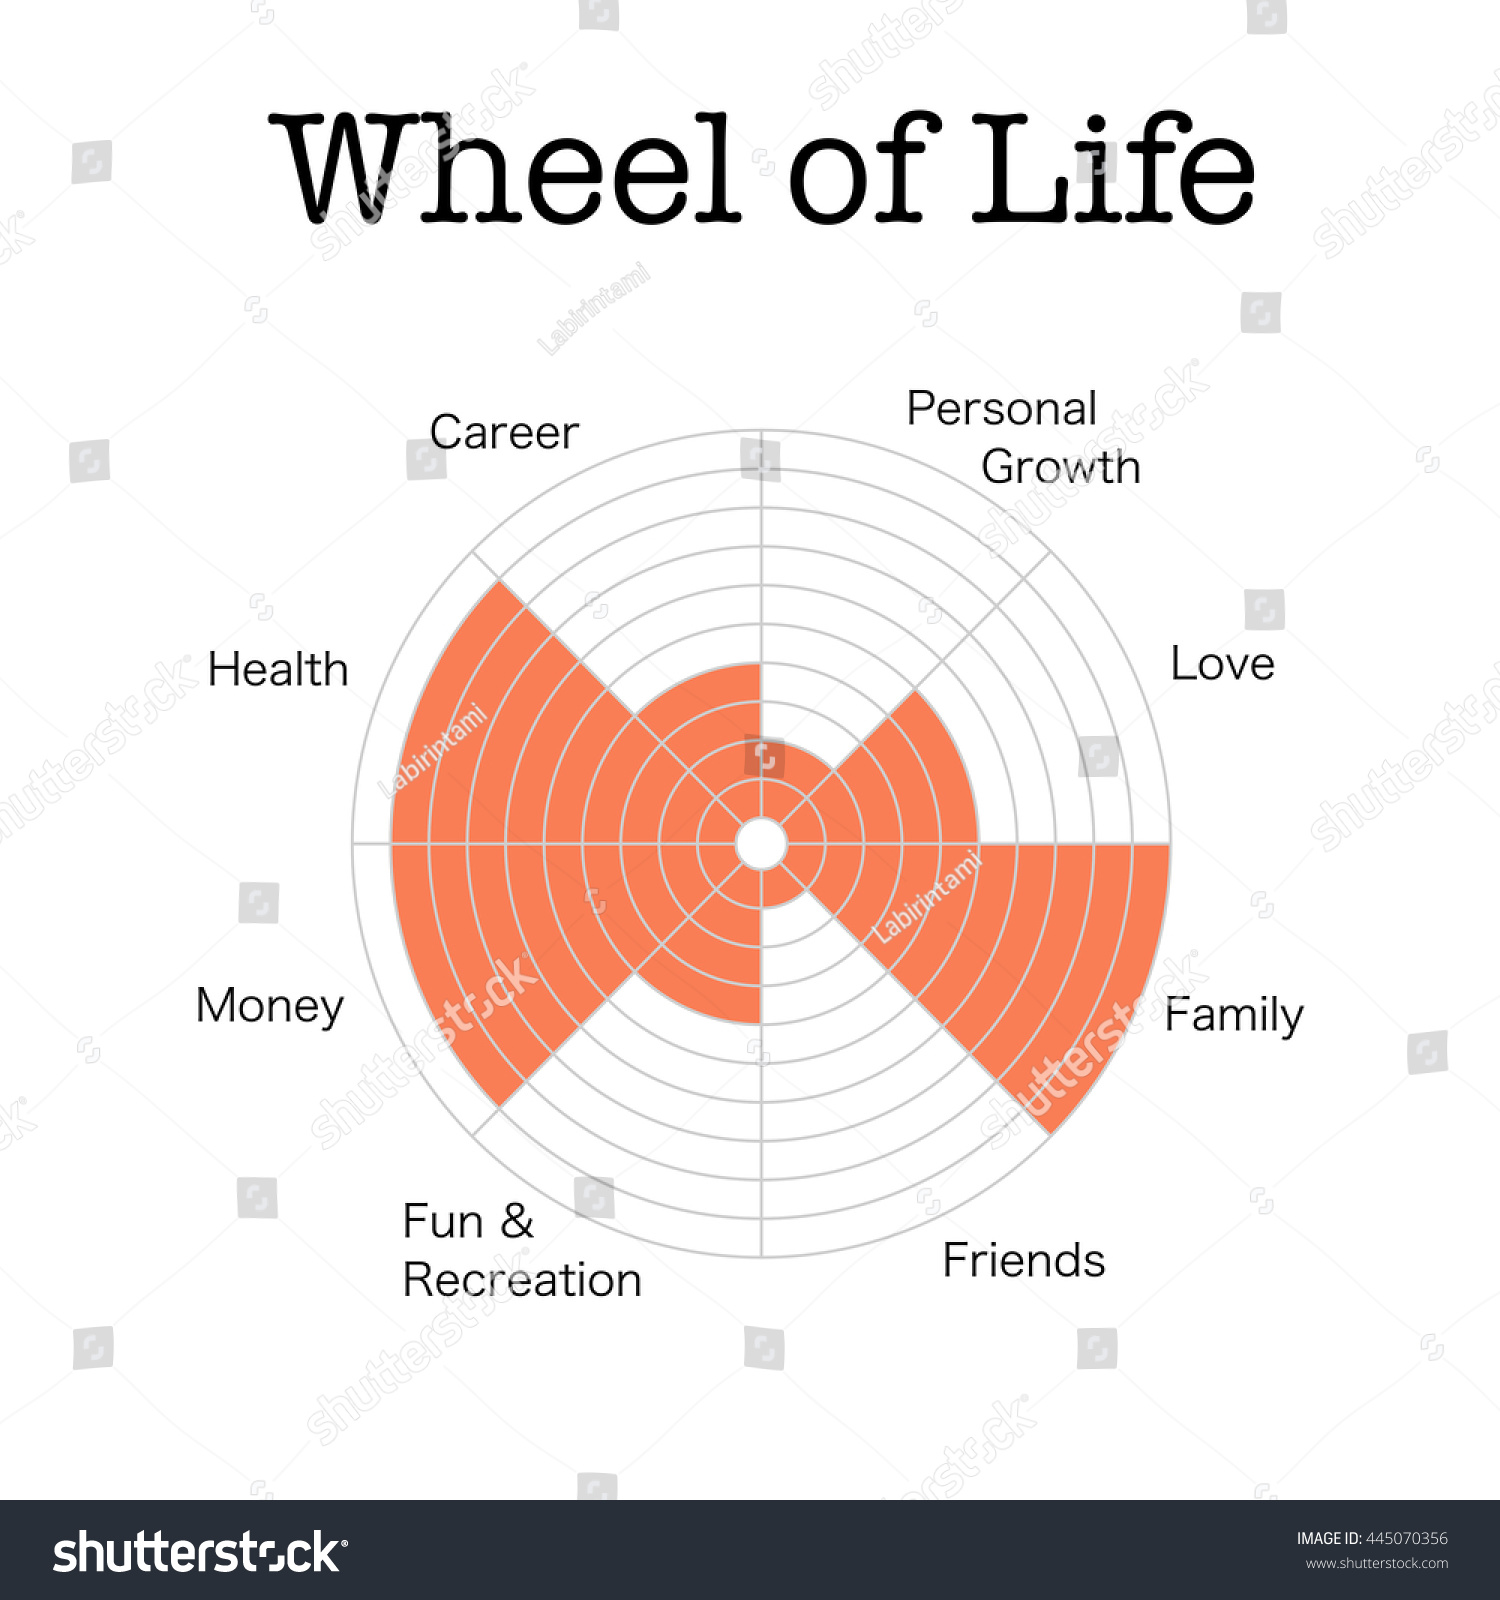 The Wheel Of Life Is A Simple Yet Powerful Tool For Visualizing All